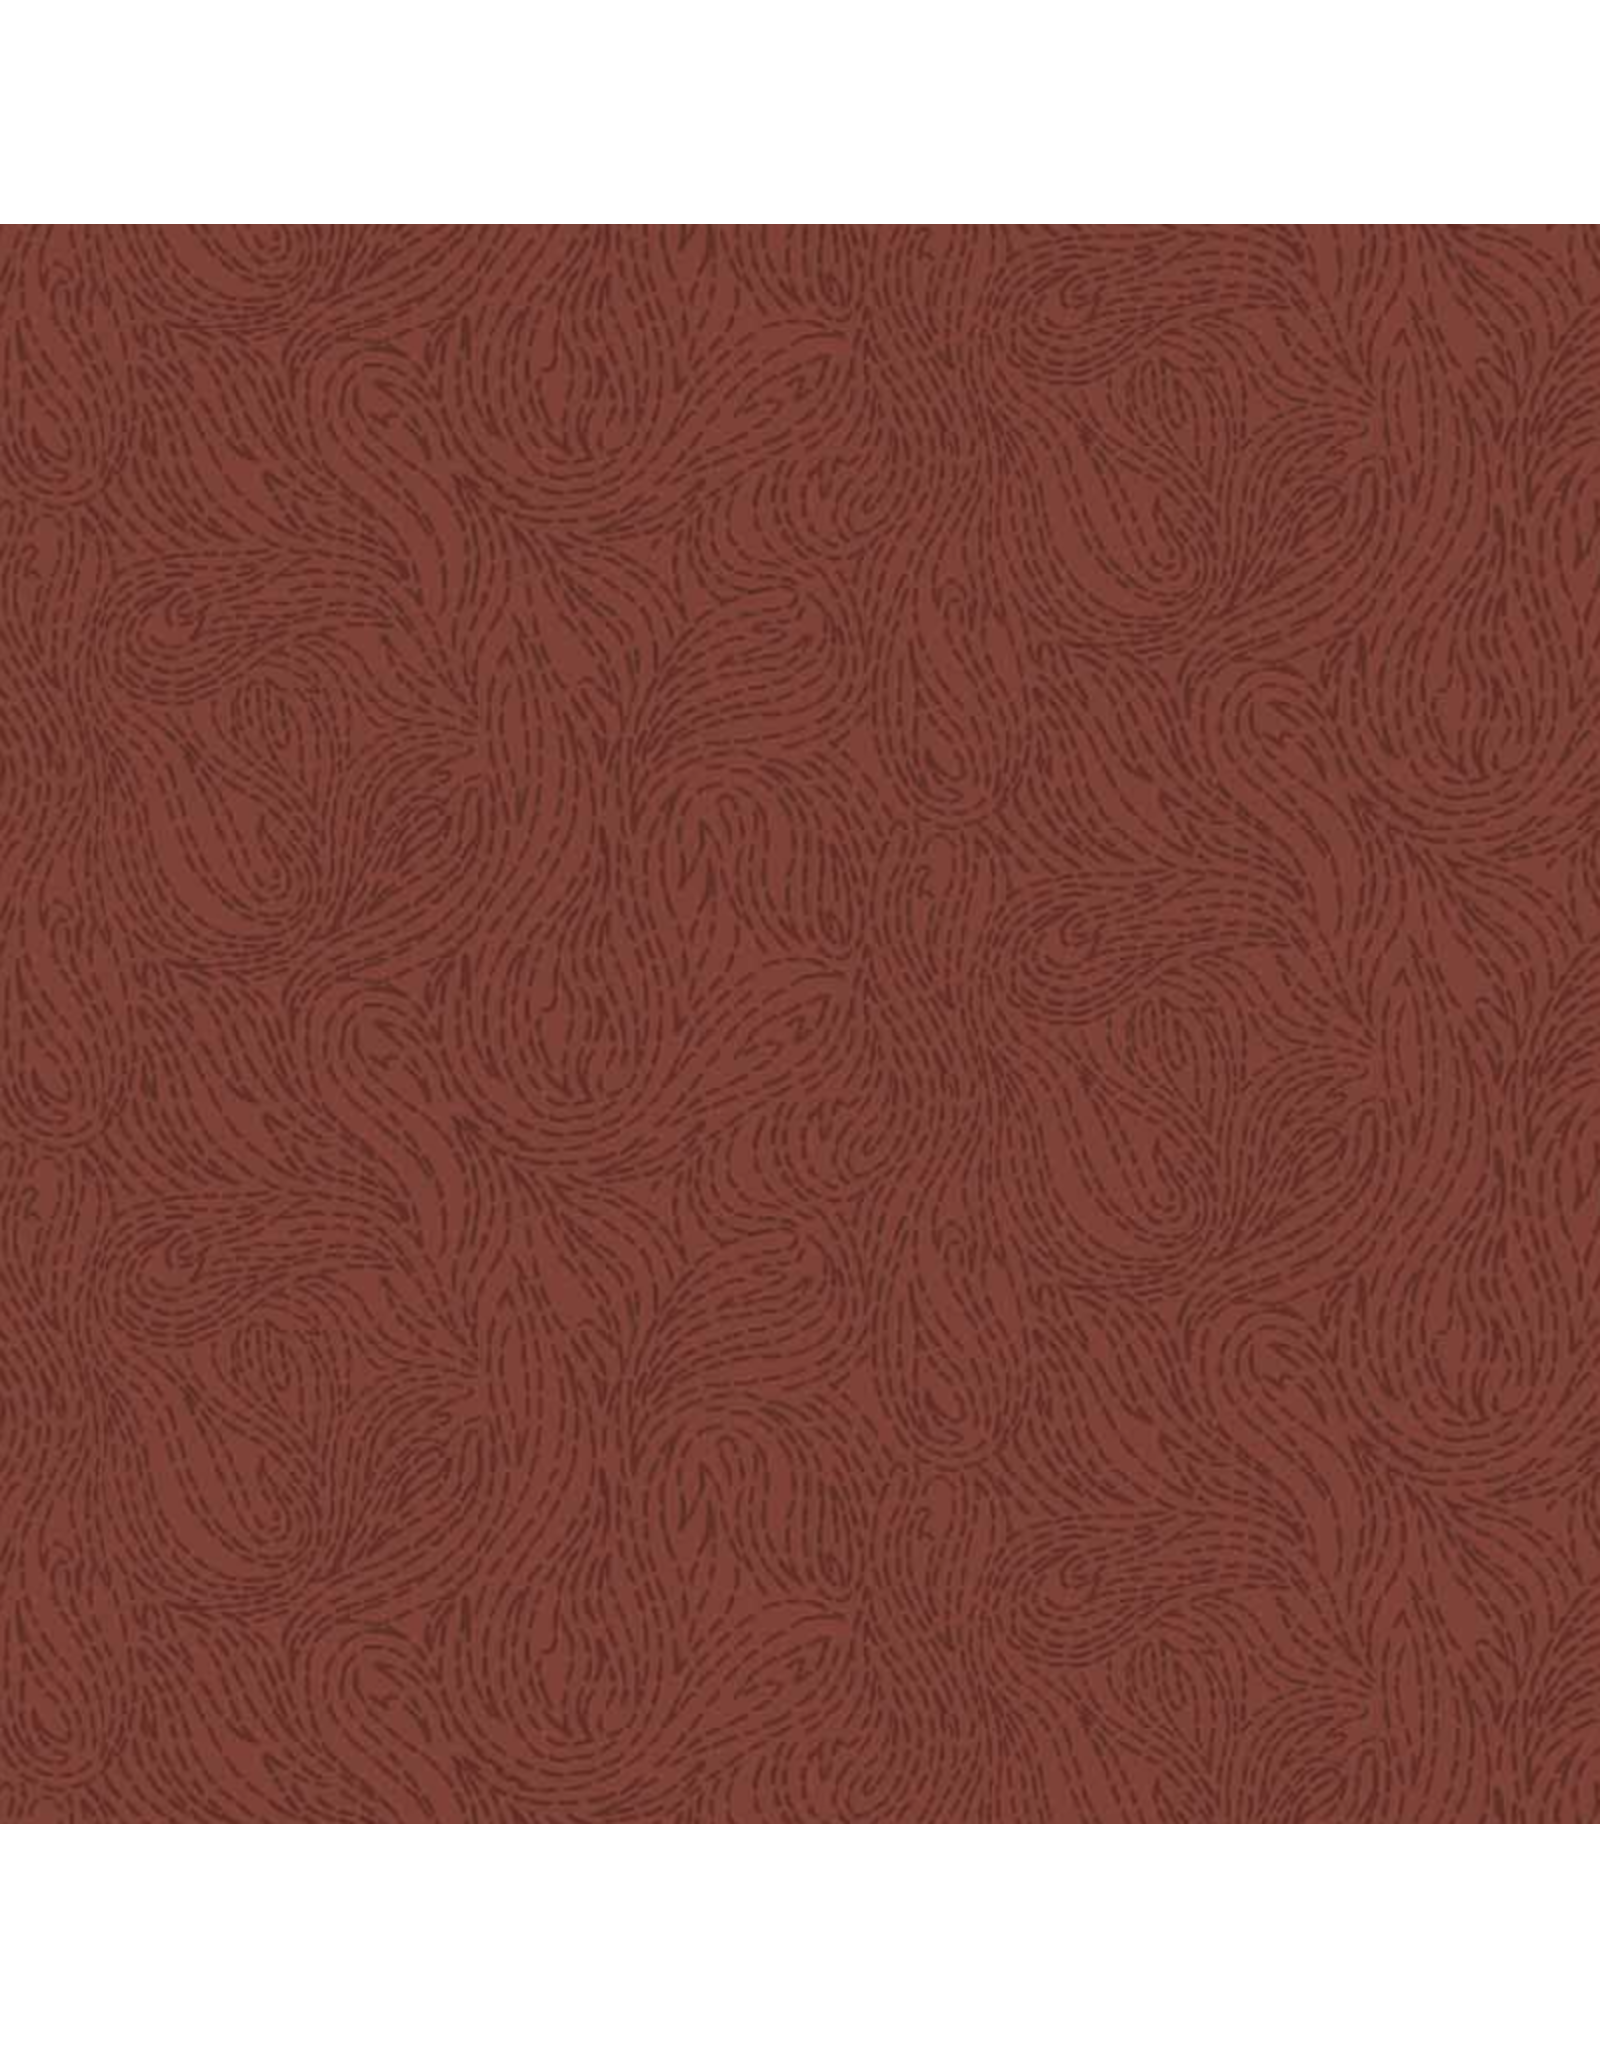 Figo Elements, Fire in Brown, Fabric Half-Yards 92009-36